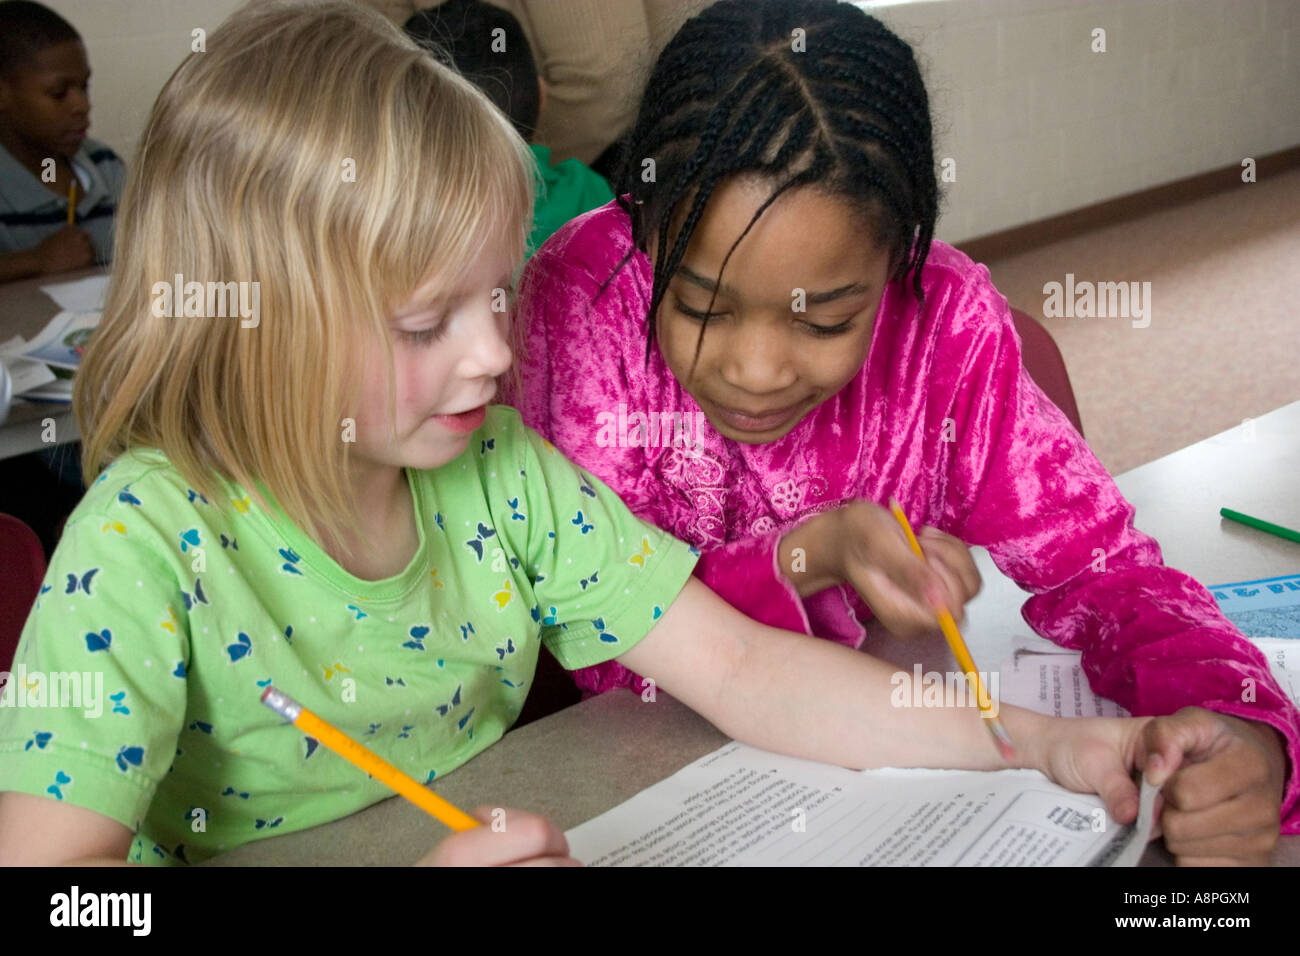 Students working on homework after school. After School Study Program. St Paul Minnesota USA - Stock Image